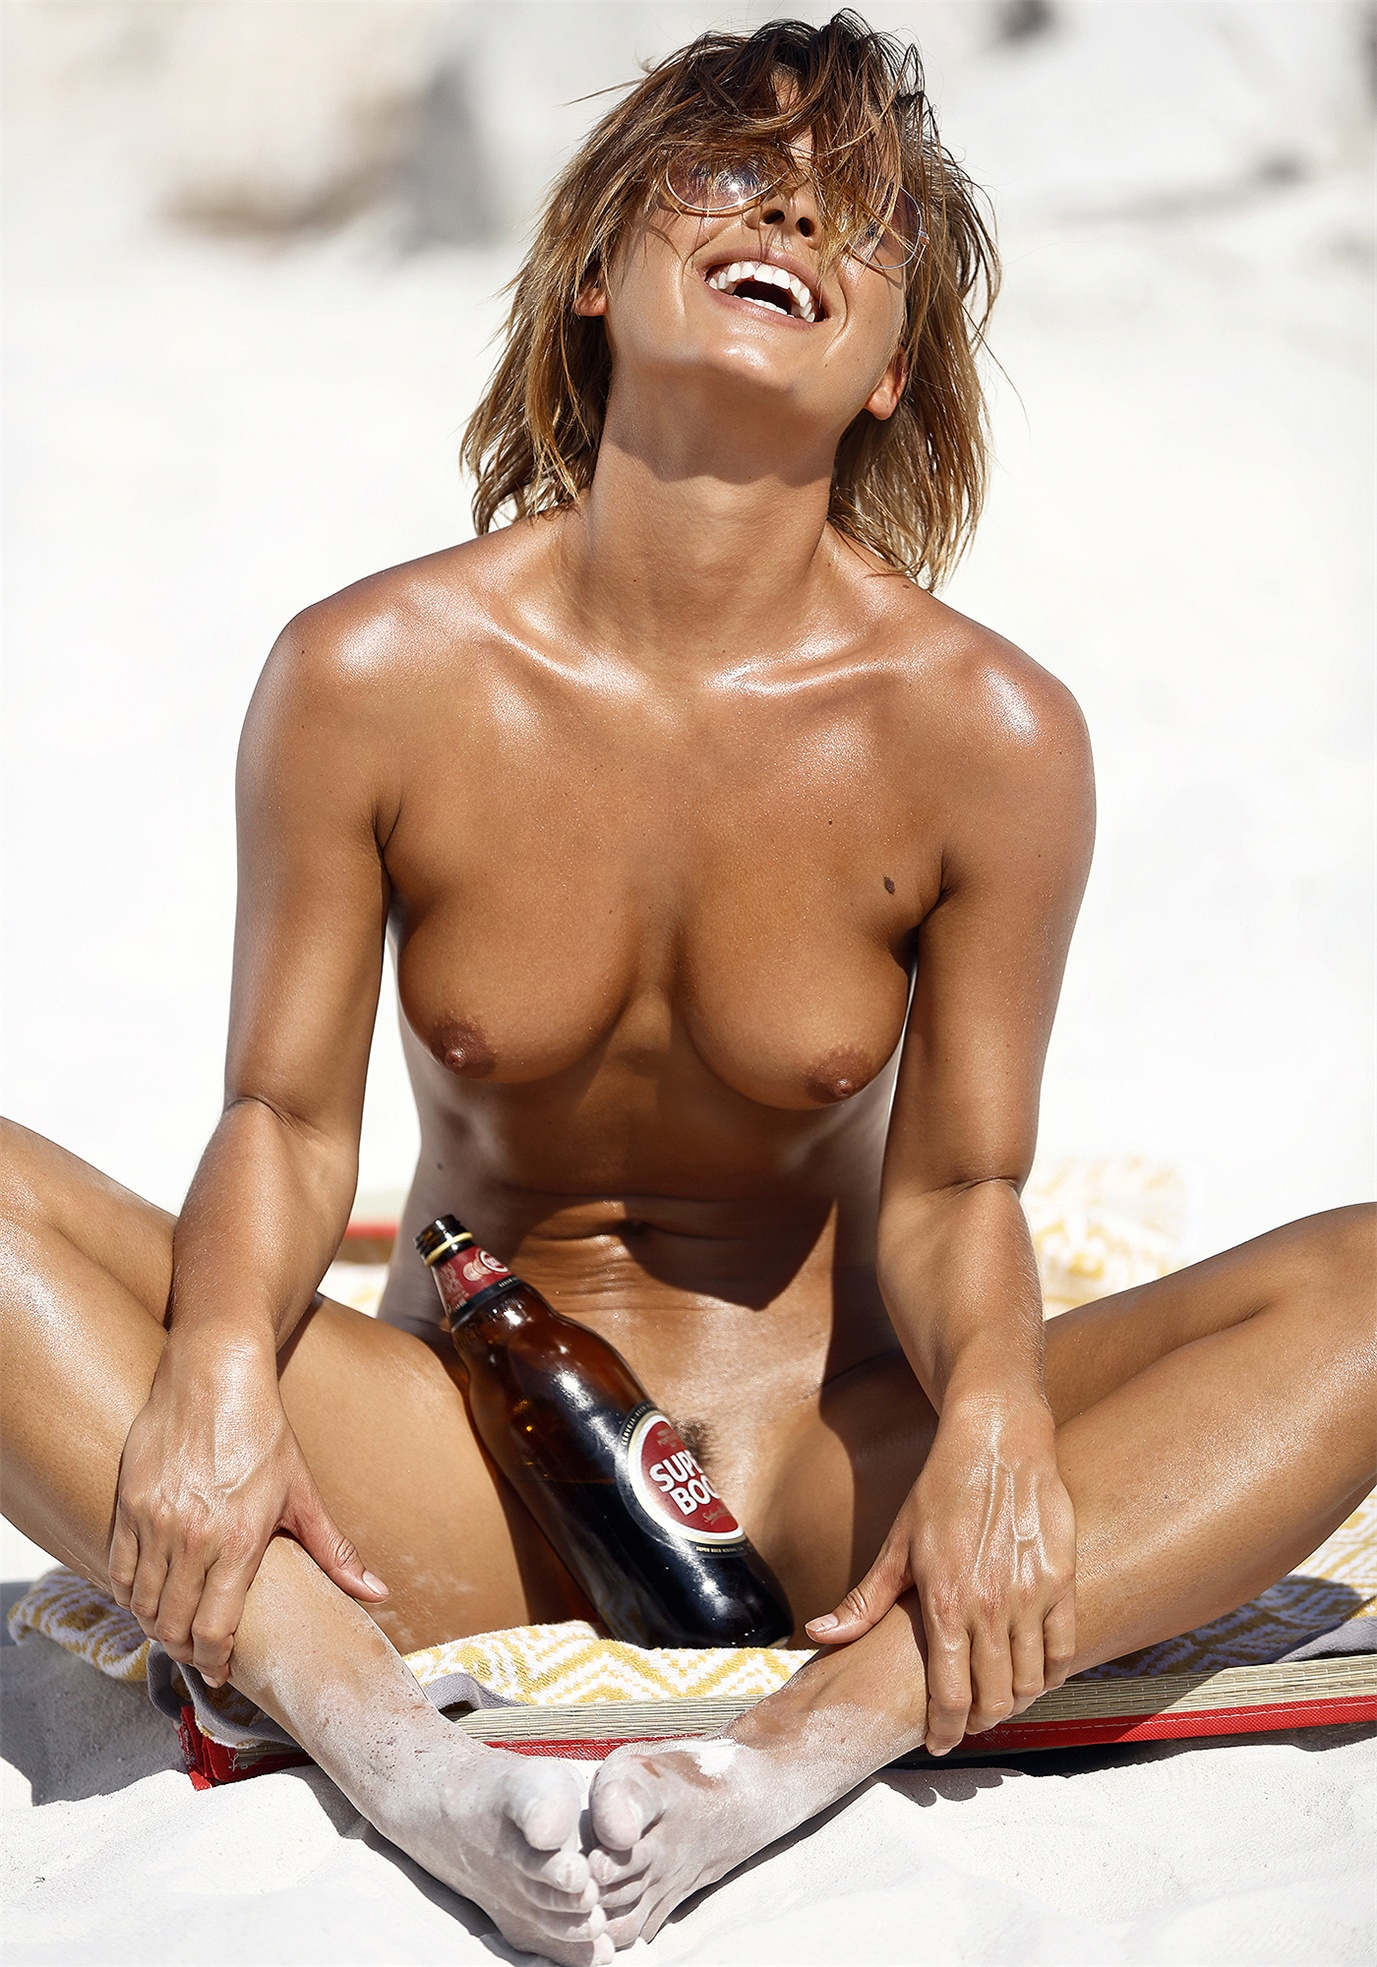 Marisa Papen nude by Ana Dias / Playboy Portugal october 2018